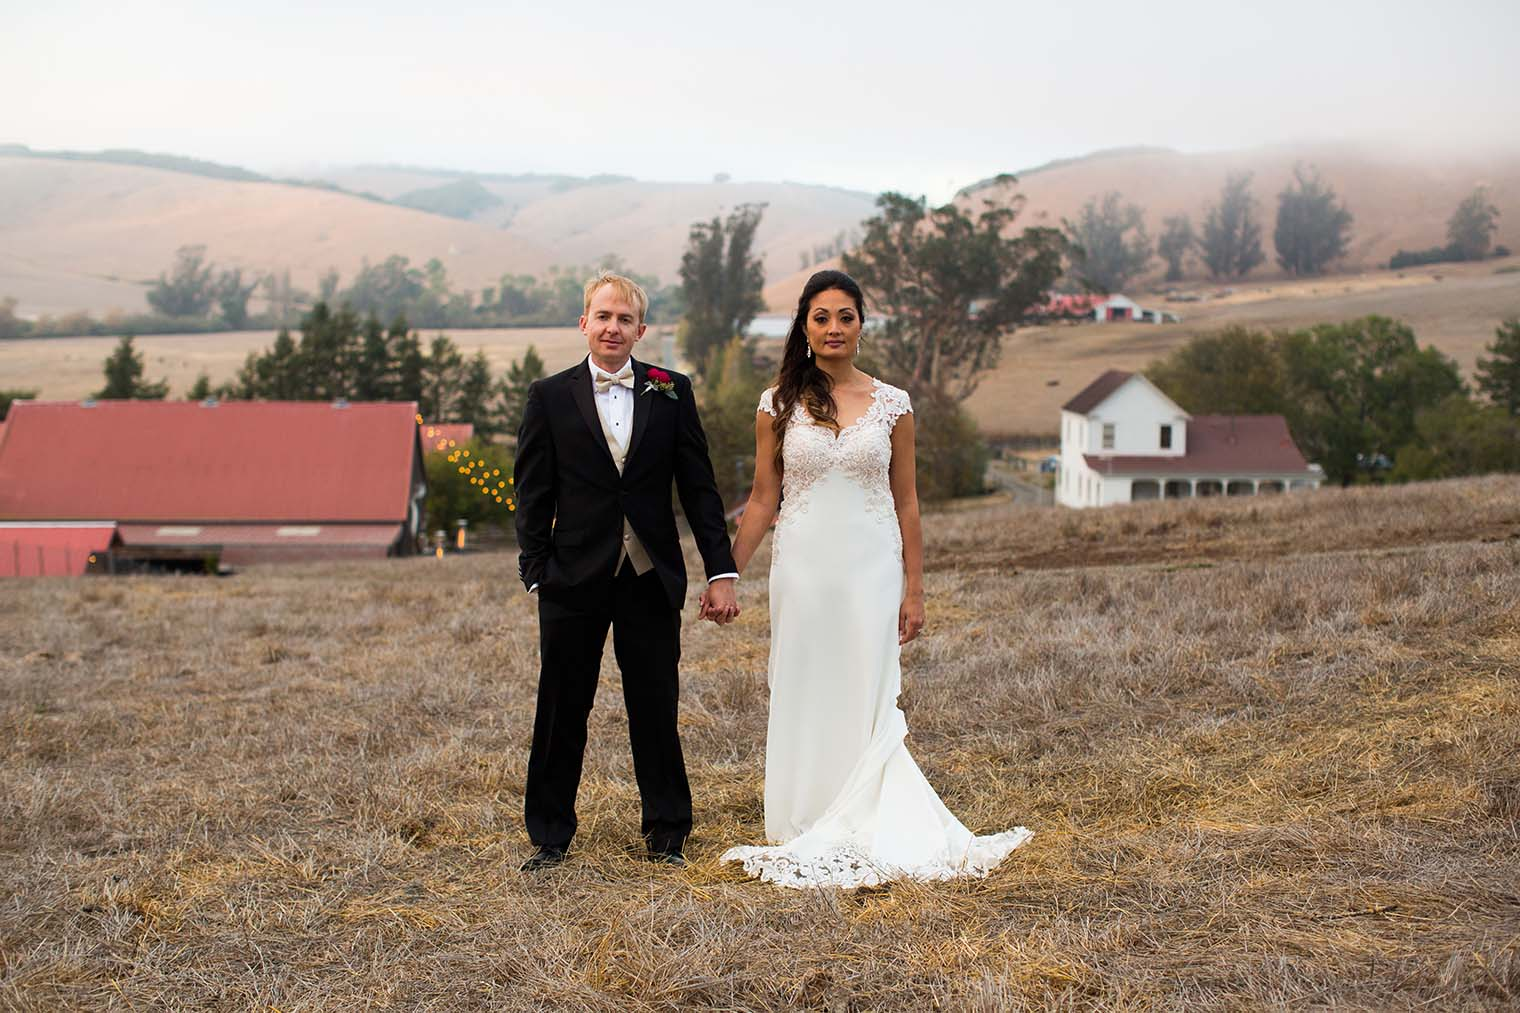 Sunset Couple Photos at Olympia's Valley Estate Wedding